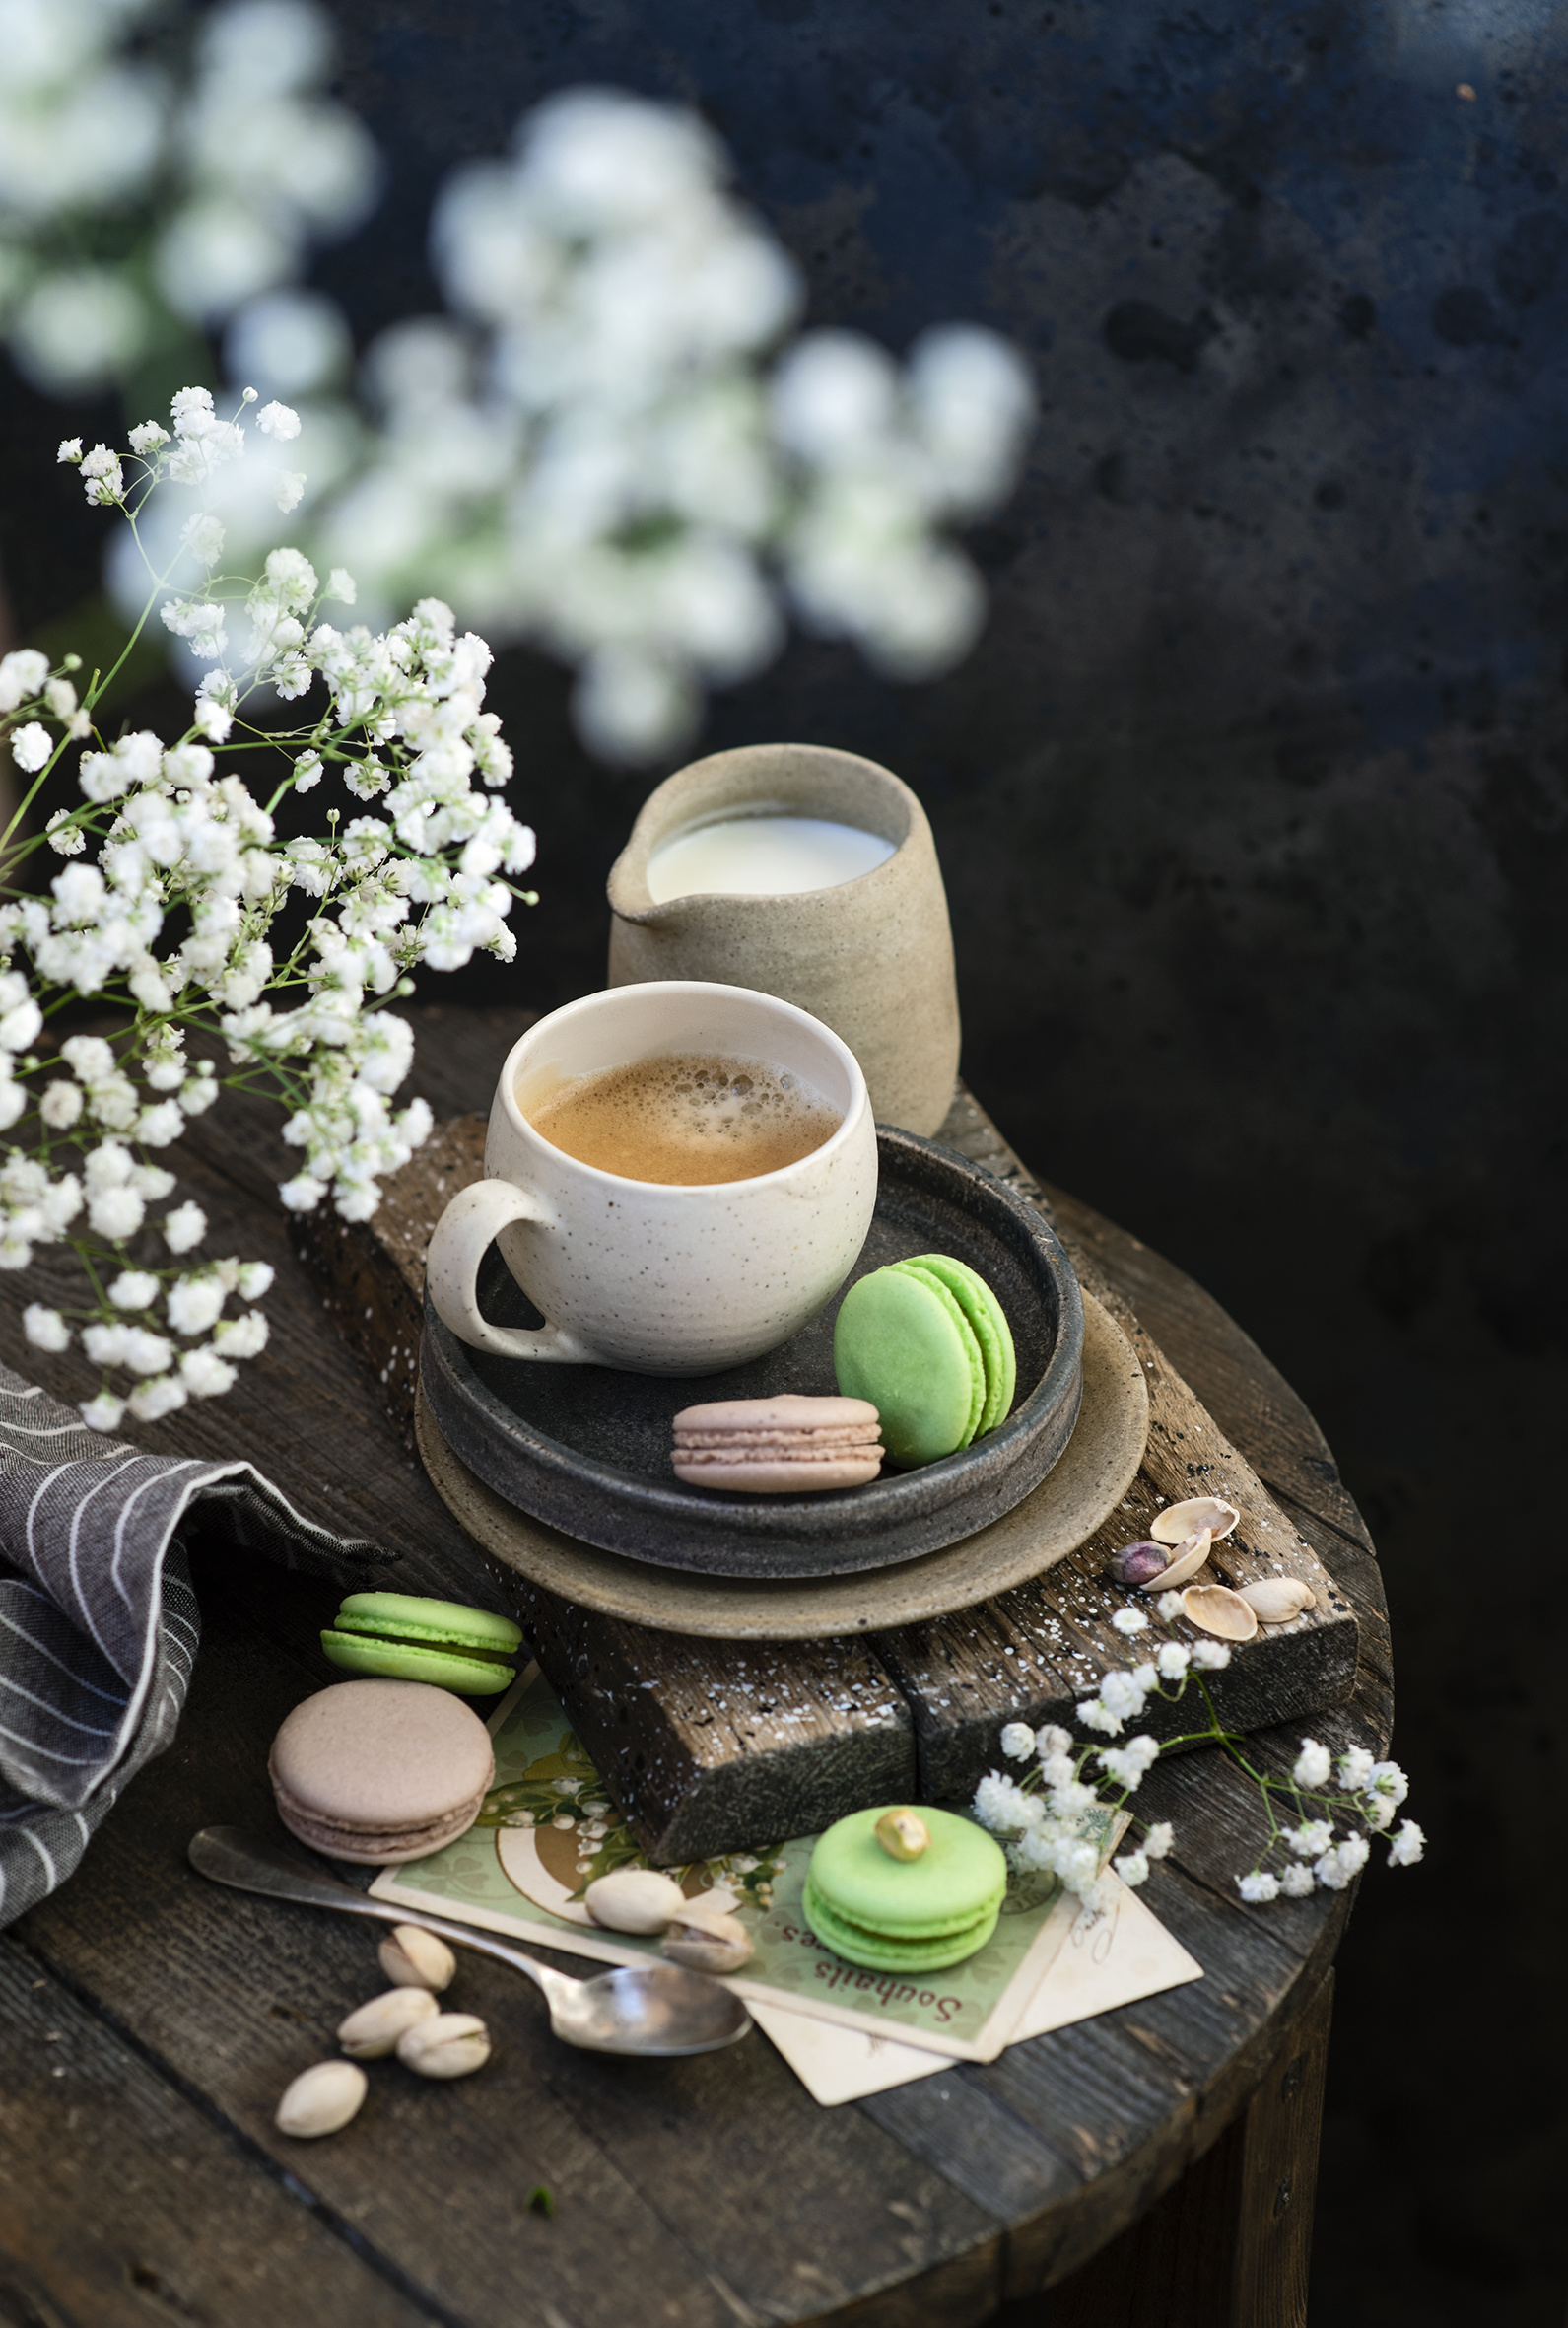 Picture Macaron Coffee Cappuccino Cup Food Nuts  for Mobile phone french macarons